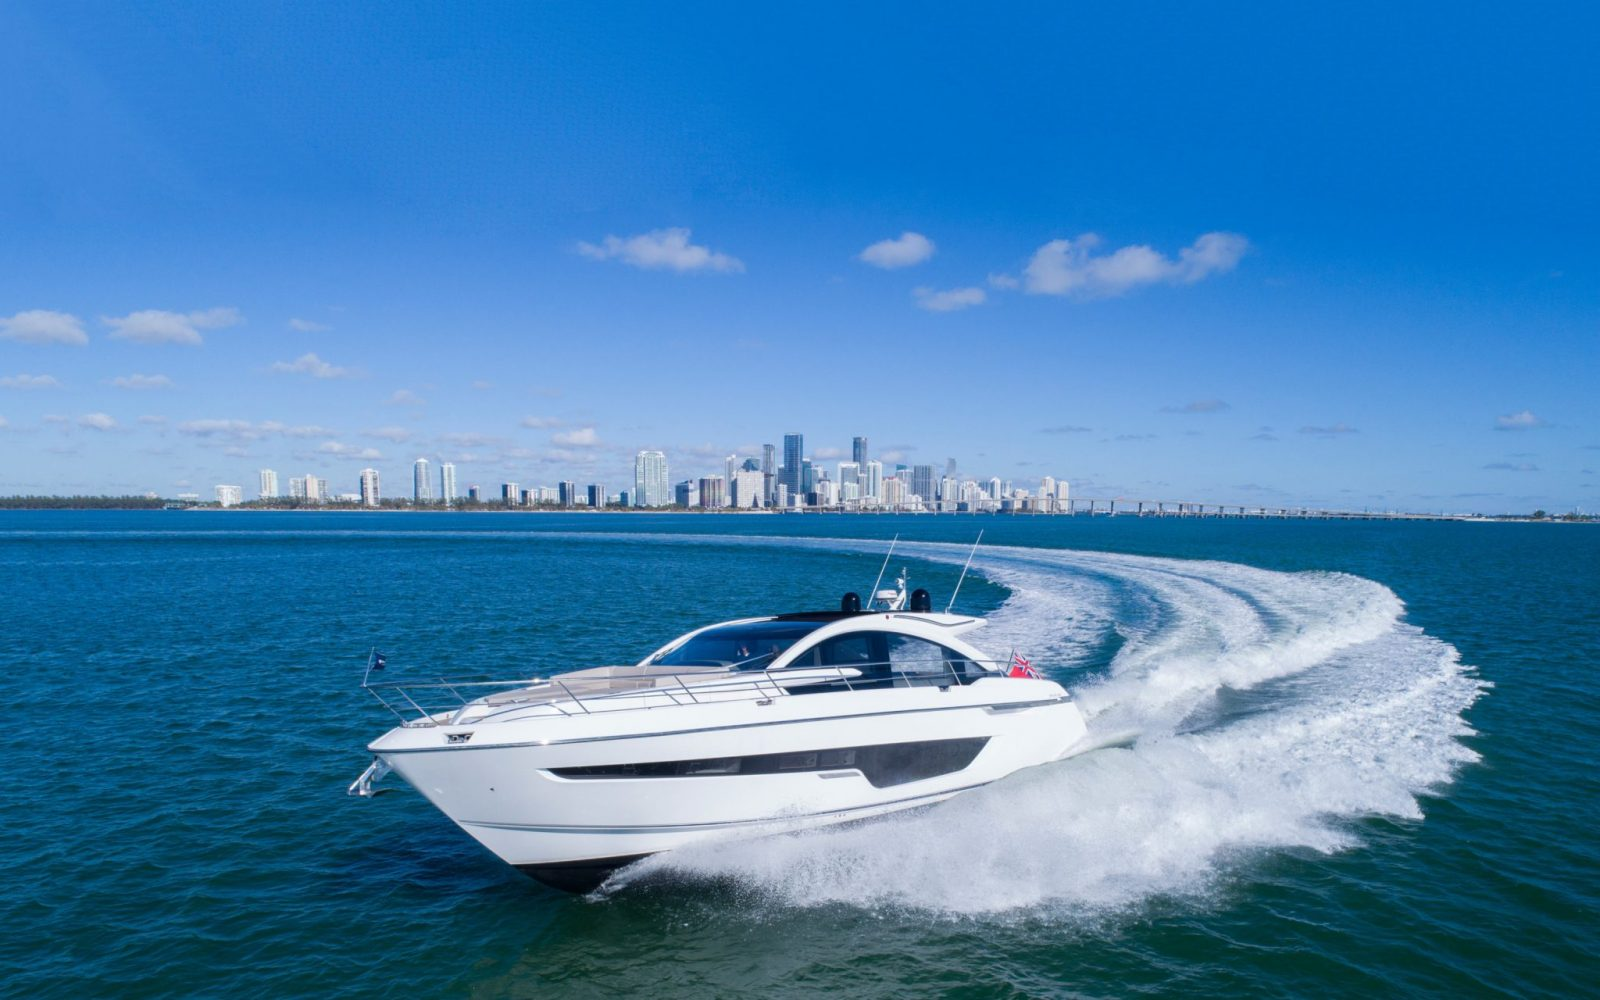 4000L_targa-63-gto-bow-miami-3000x1875 | FAIRLINE  YACHTS